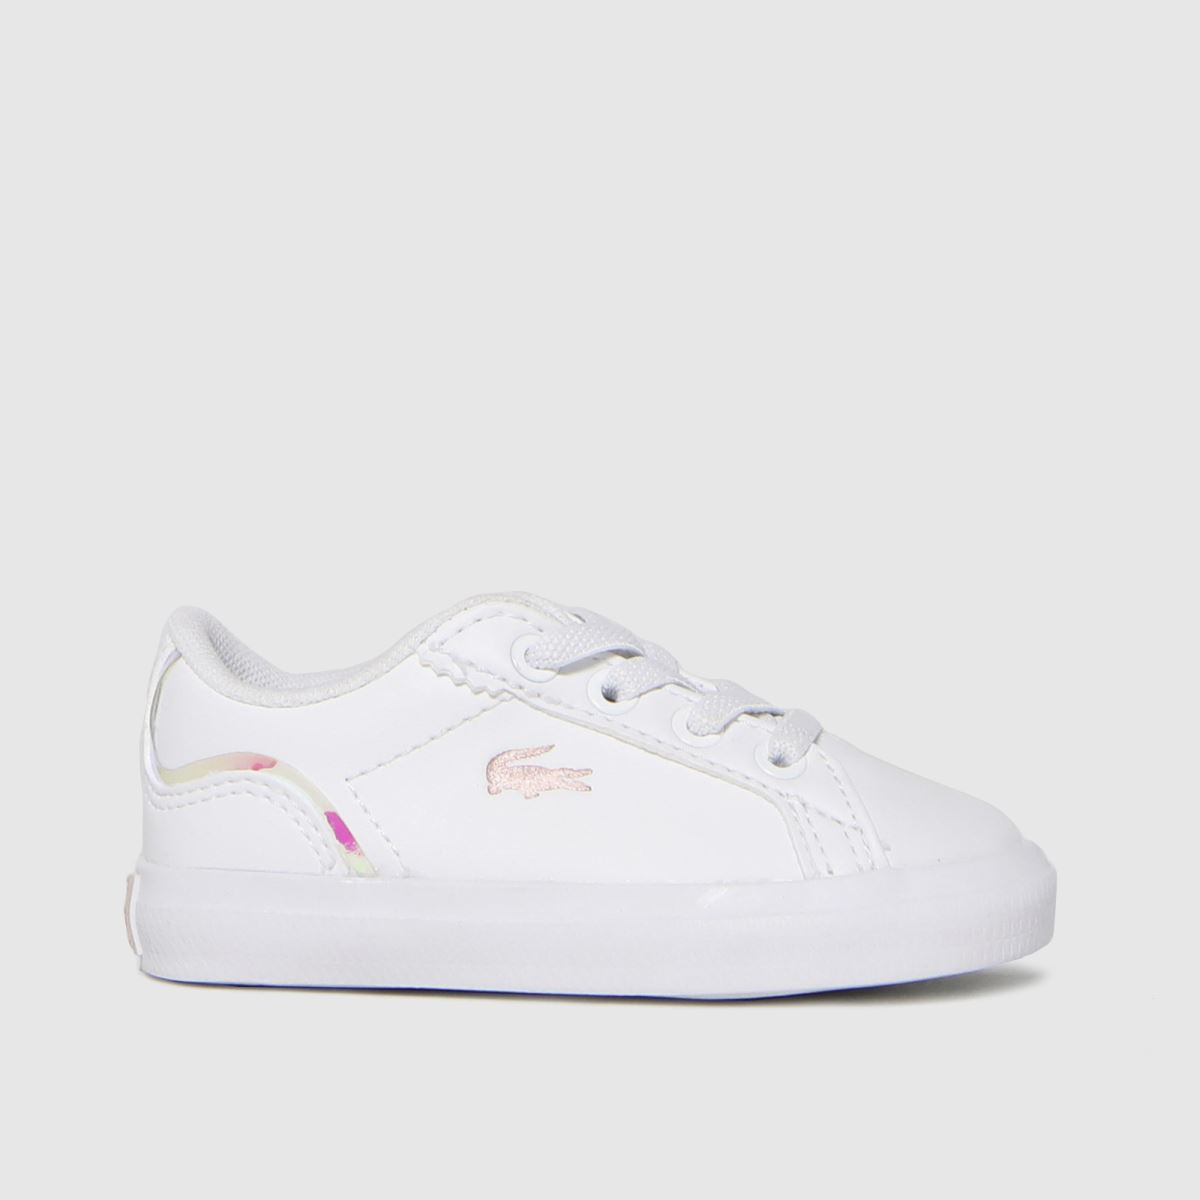 Lacoste White & Pink Lerond Trainers Toddler